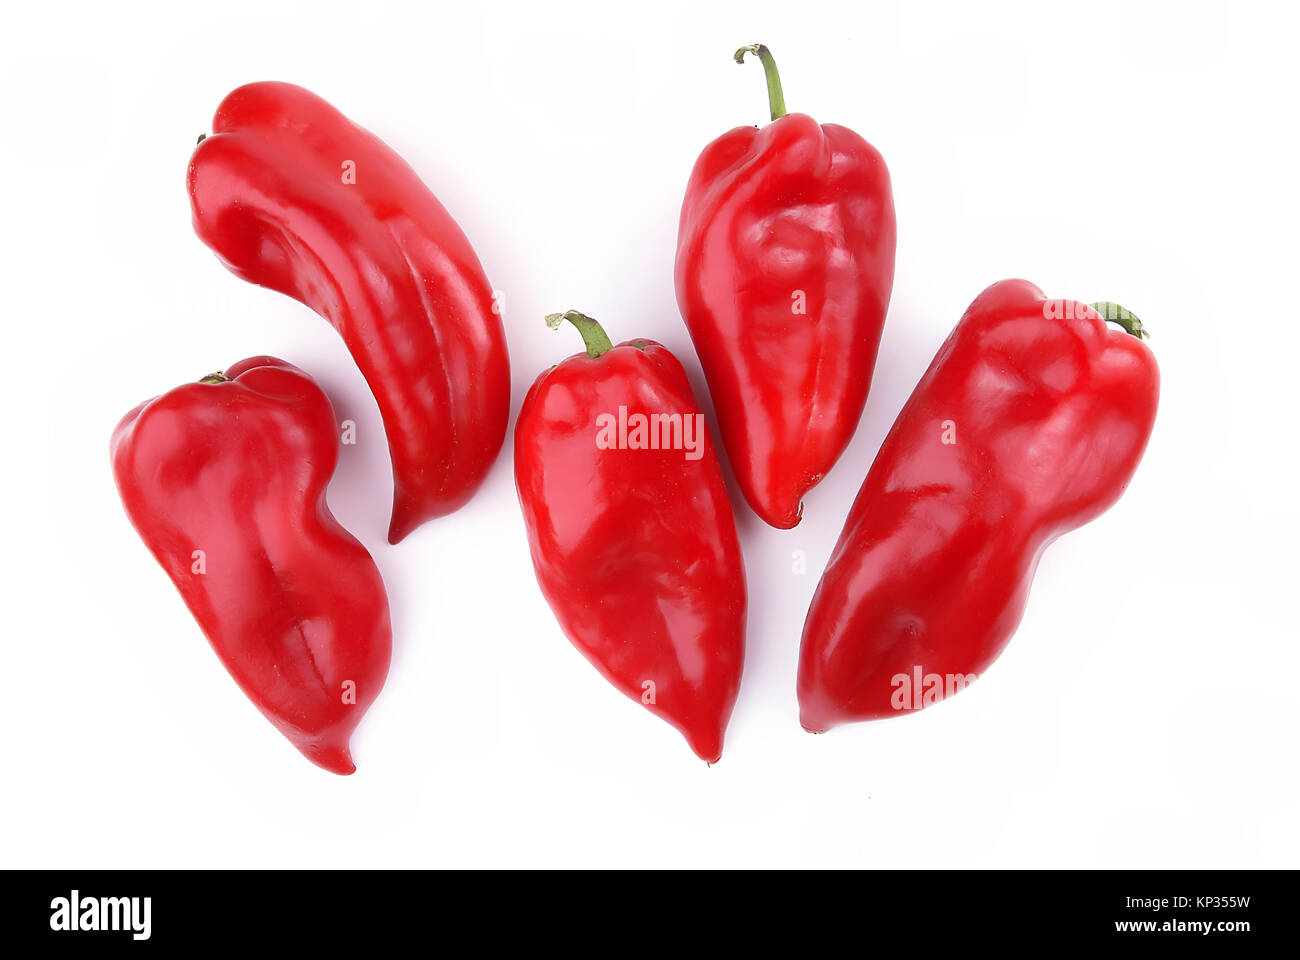 Fifth Peppers in group on white background - Stock Image